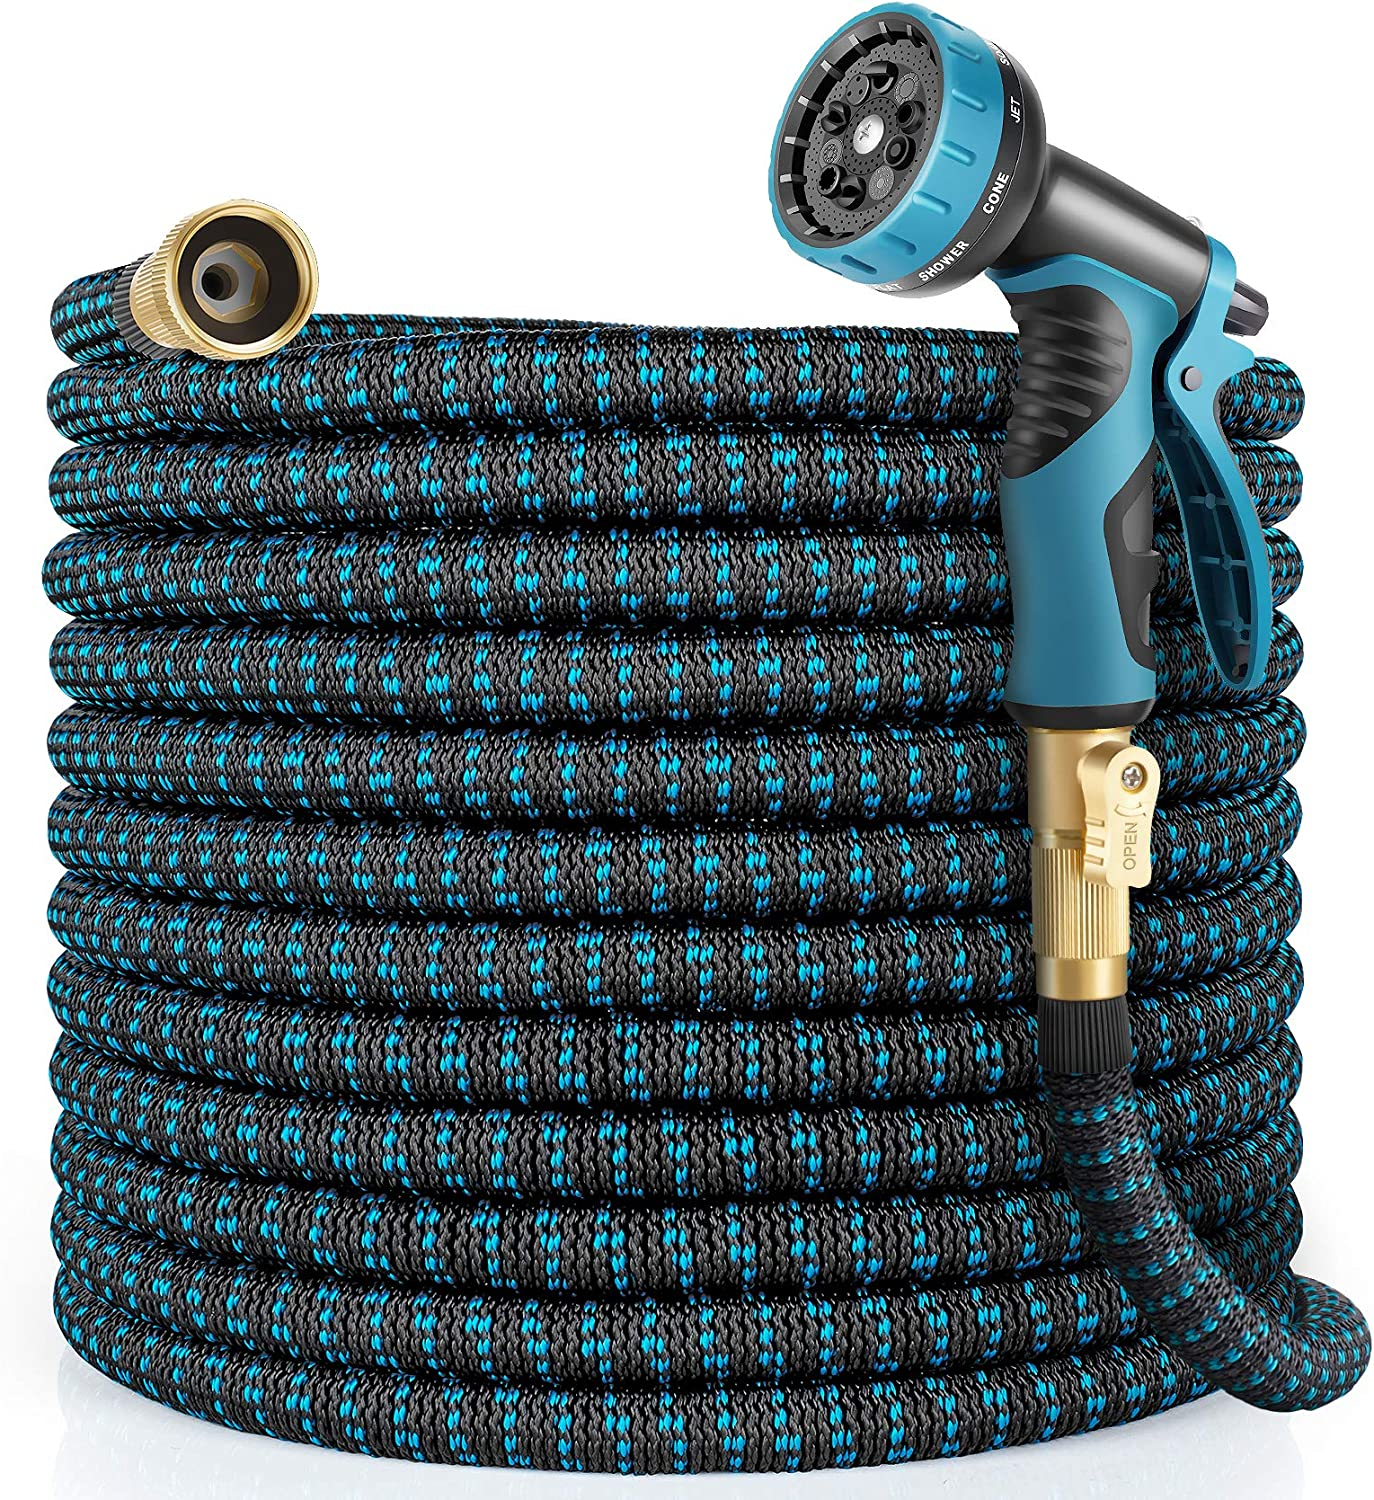 HARNMOR Expandable Garden Hose 100ft - Flexible Water Hose with 10 Function Nozzle, Double Latex Core and 3/4 Inch Solid Fittings,3 Times Expanding Kink Free Easy Storage Collapsible Water Hose